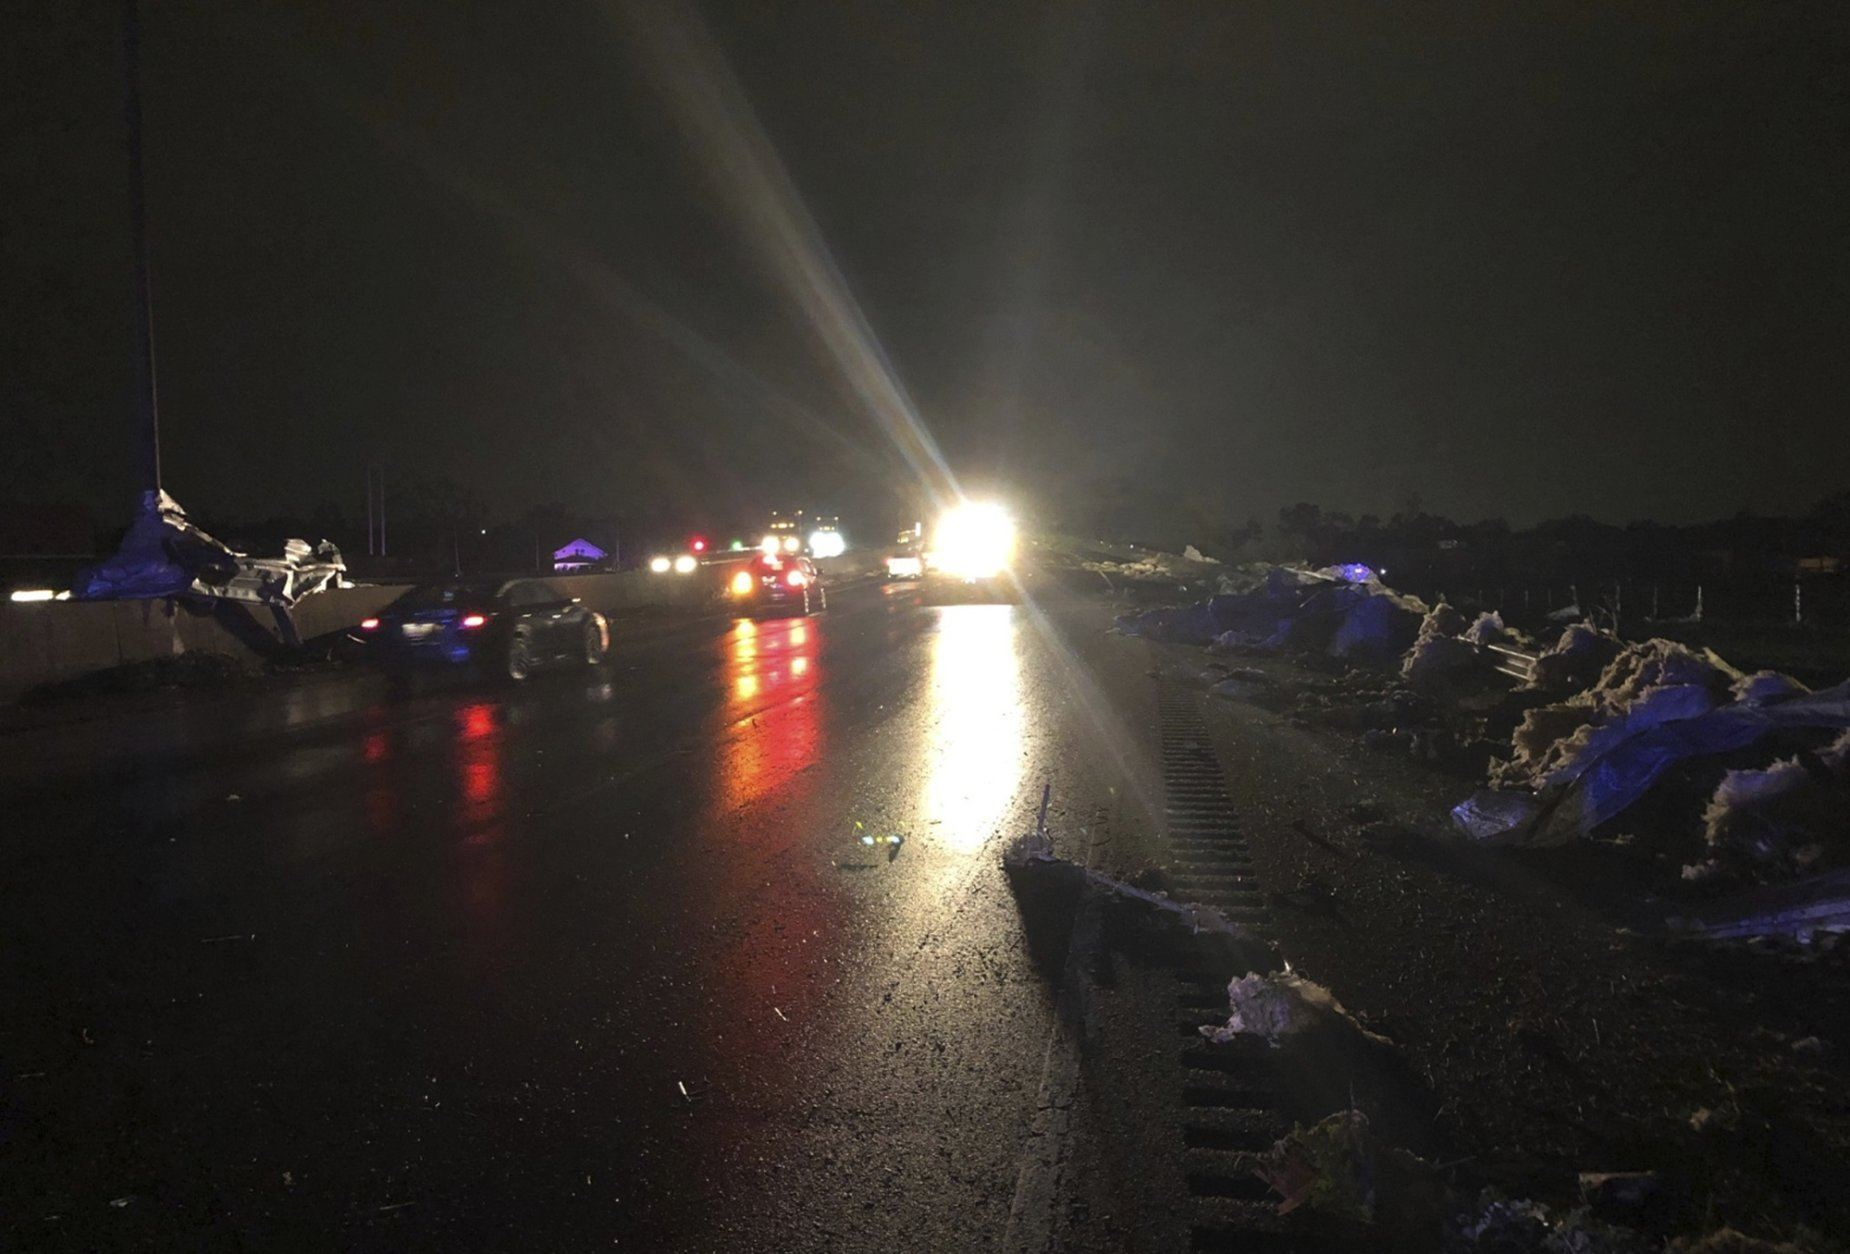 This image provided and posted by the Ohio Department of Transportation, early Tuesday, May 28, 2019, shows crews on Interstate 75 north of Dayton, Ohio, working to clean debris from the highway after a suspected tornado hit the area late Monday. (Ohio Department of Transportation via AP)